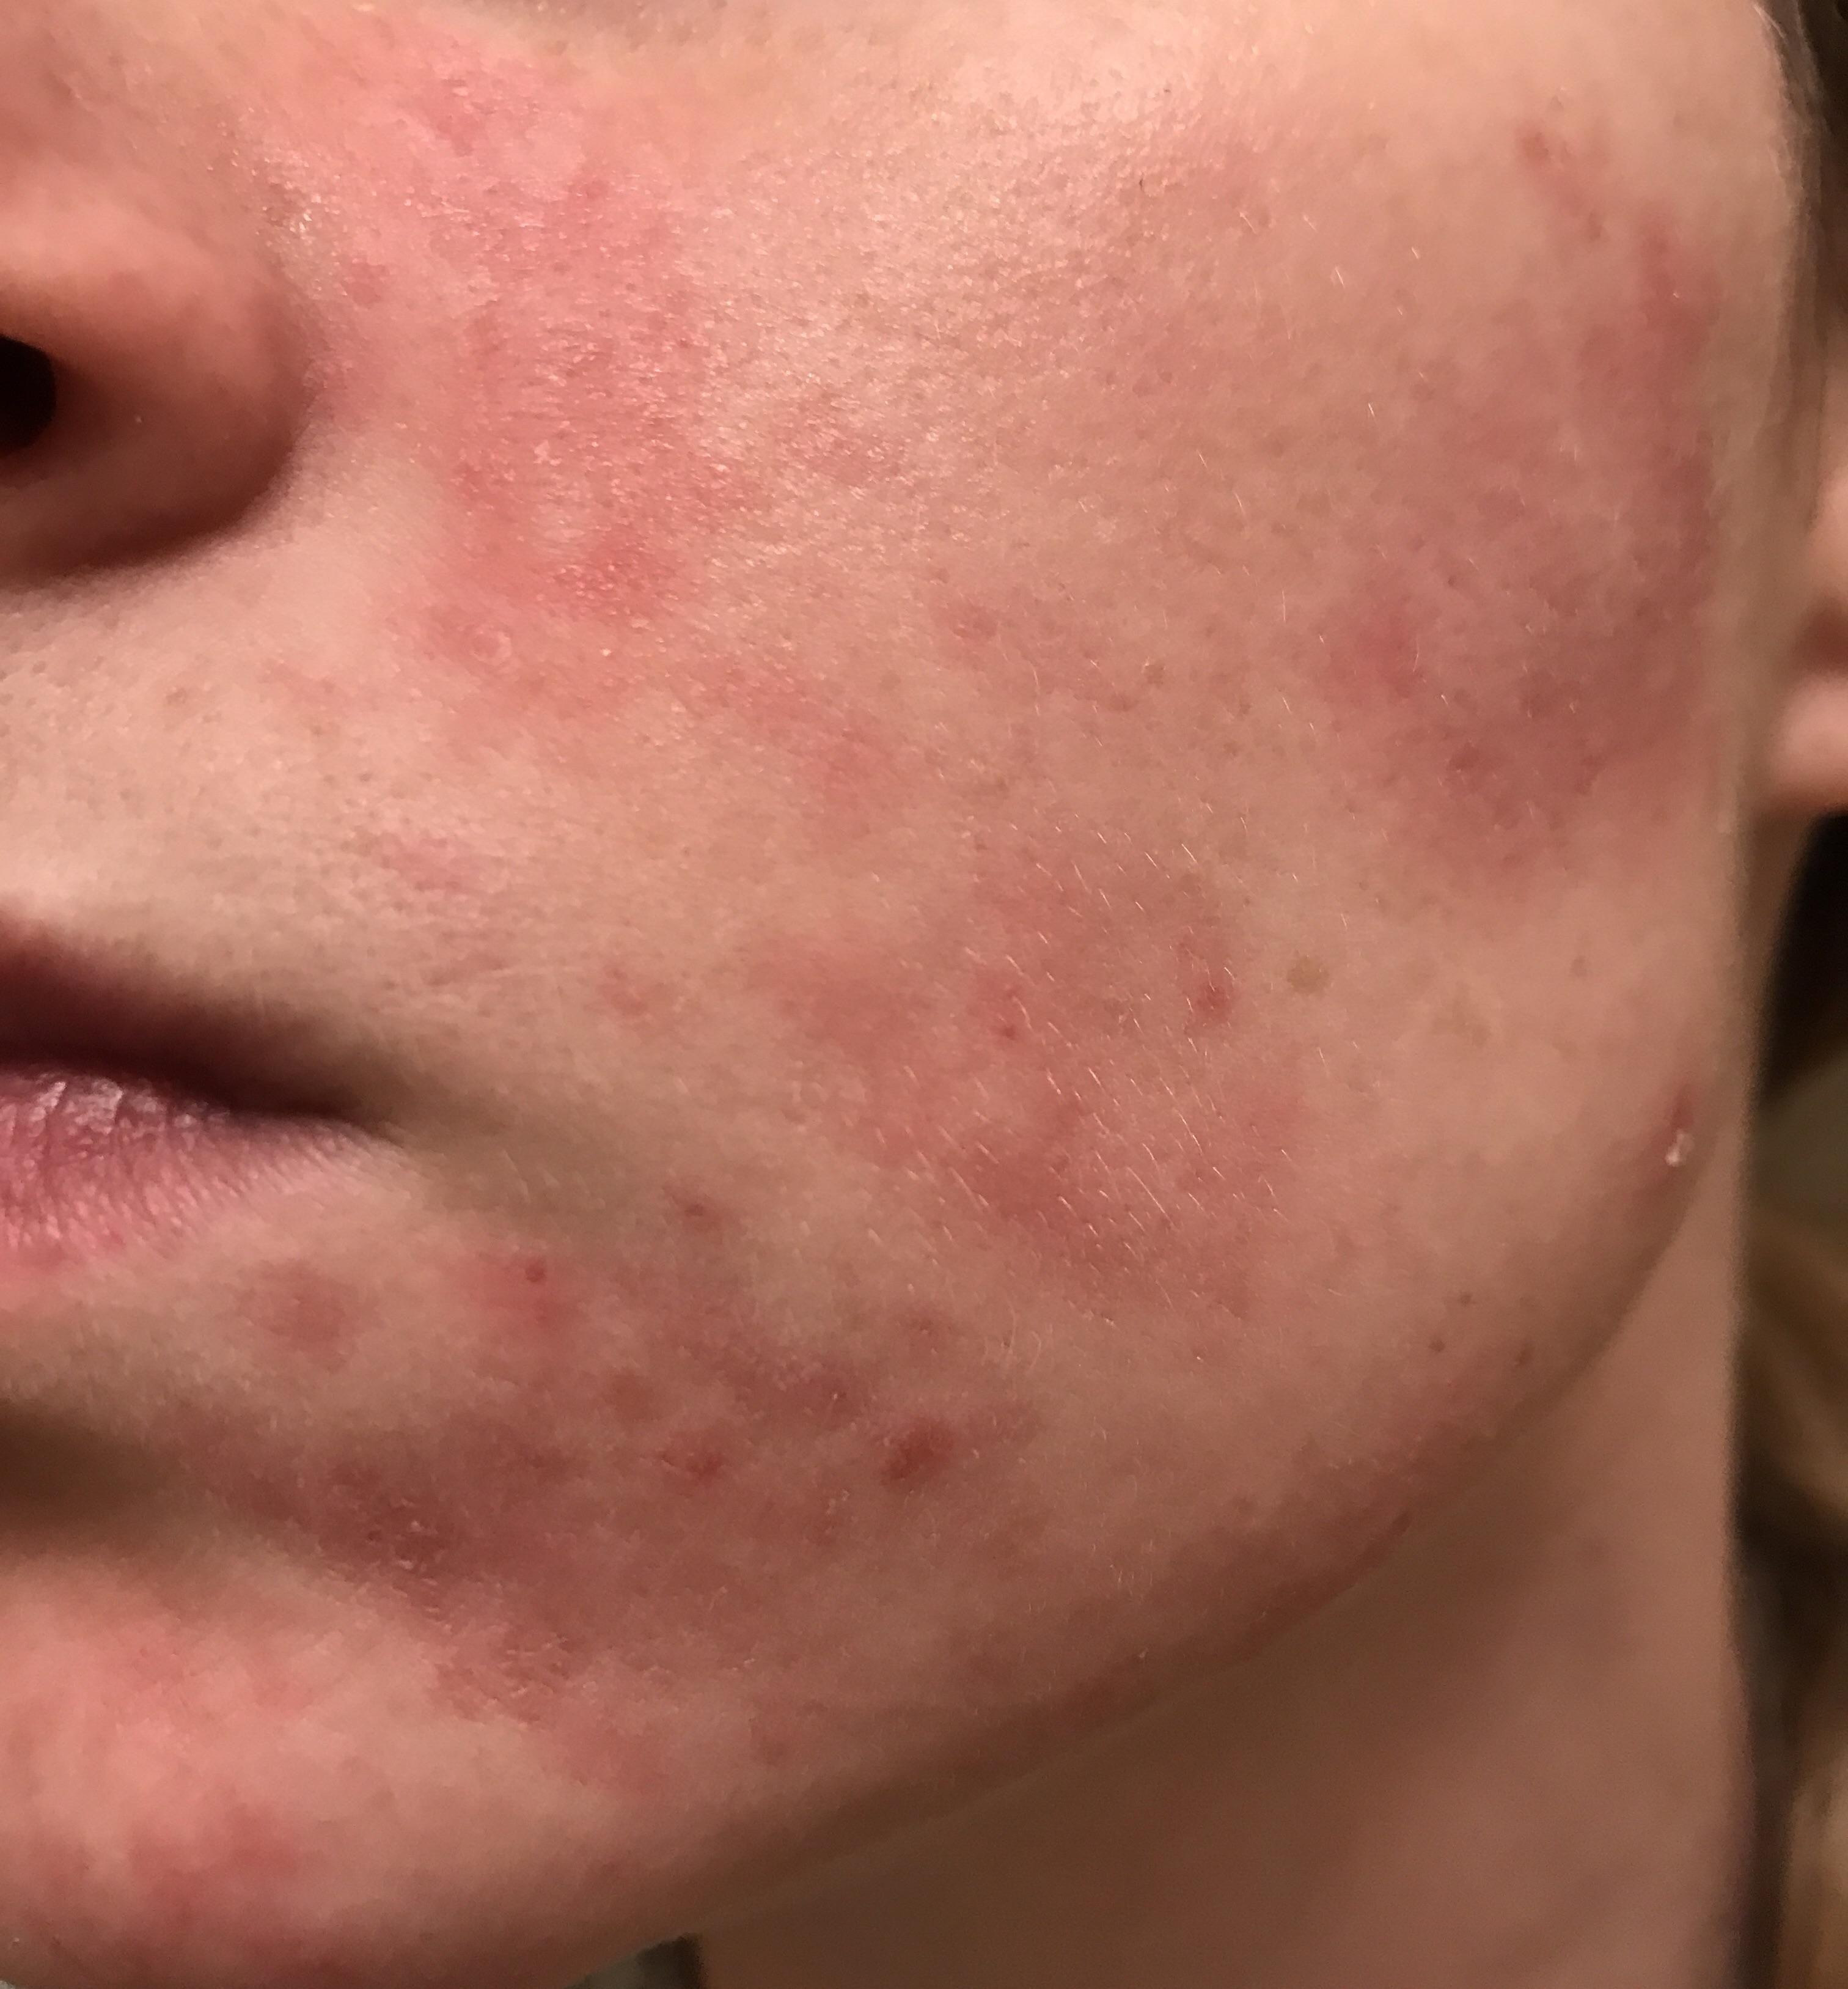 Skin concerns my skin is red raw dehydrated and damaged from